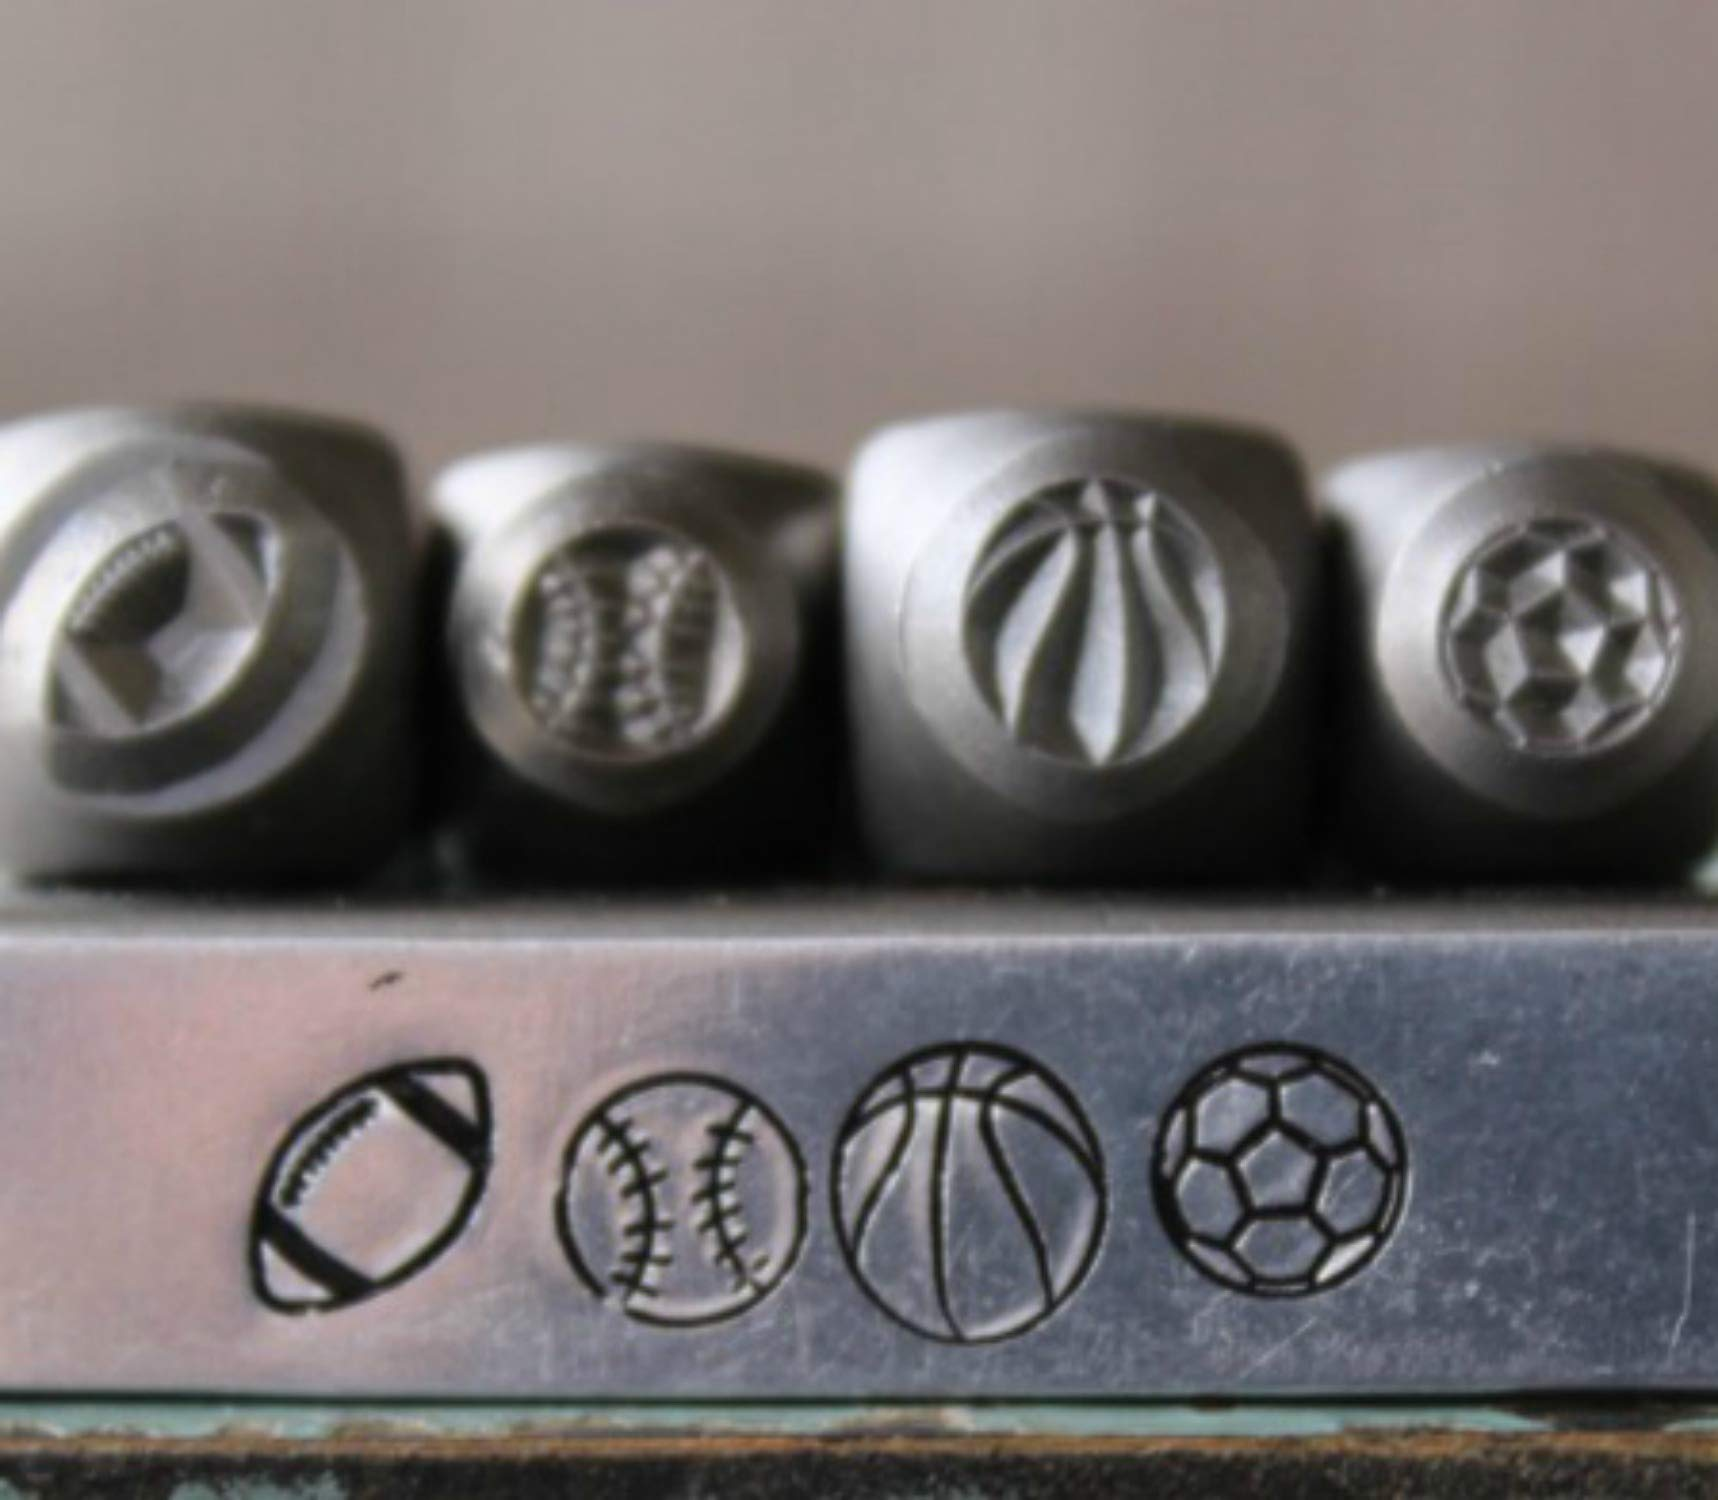 Brand New 5mm and 6mm Sport Ball Metal Punch Design 4 Stamp Set - Supply Guy - CH-236188245311